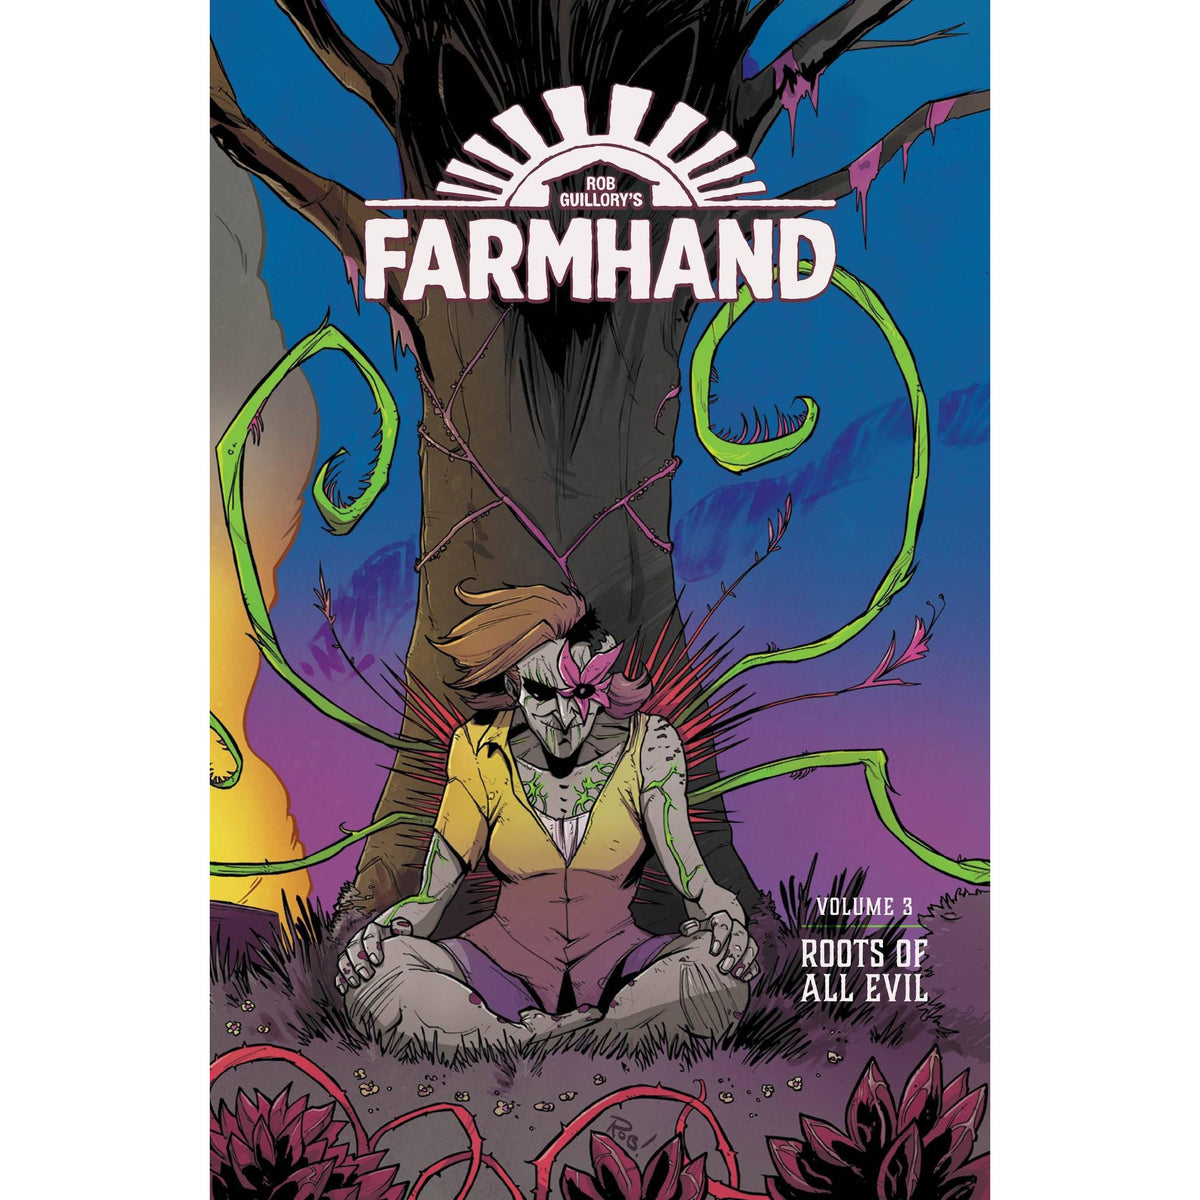 FARMHAND VOLUME 03: ROOTS OF ALL EVIL